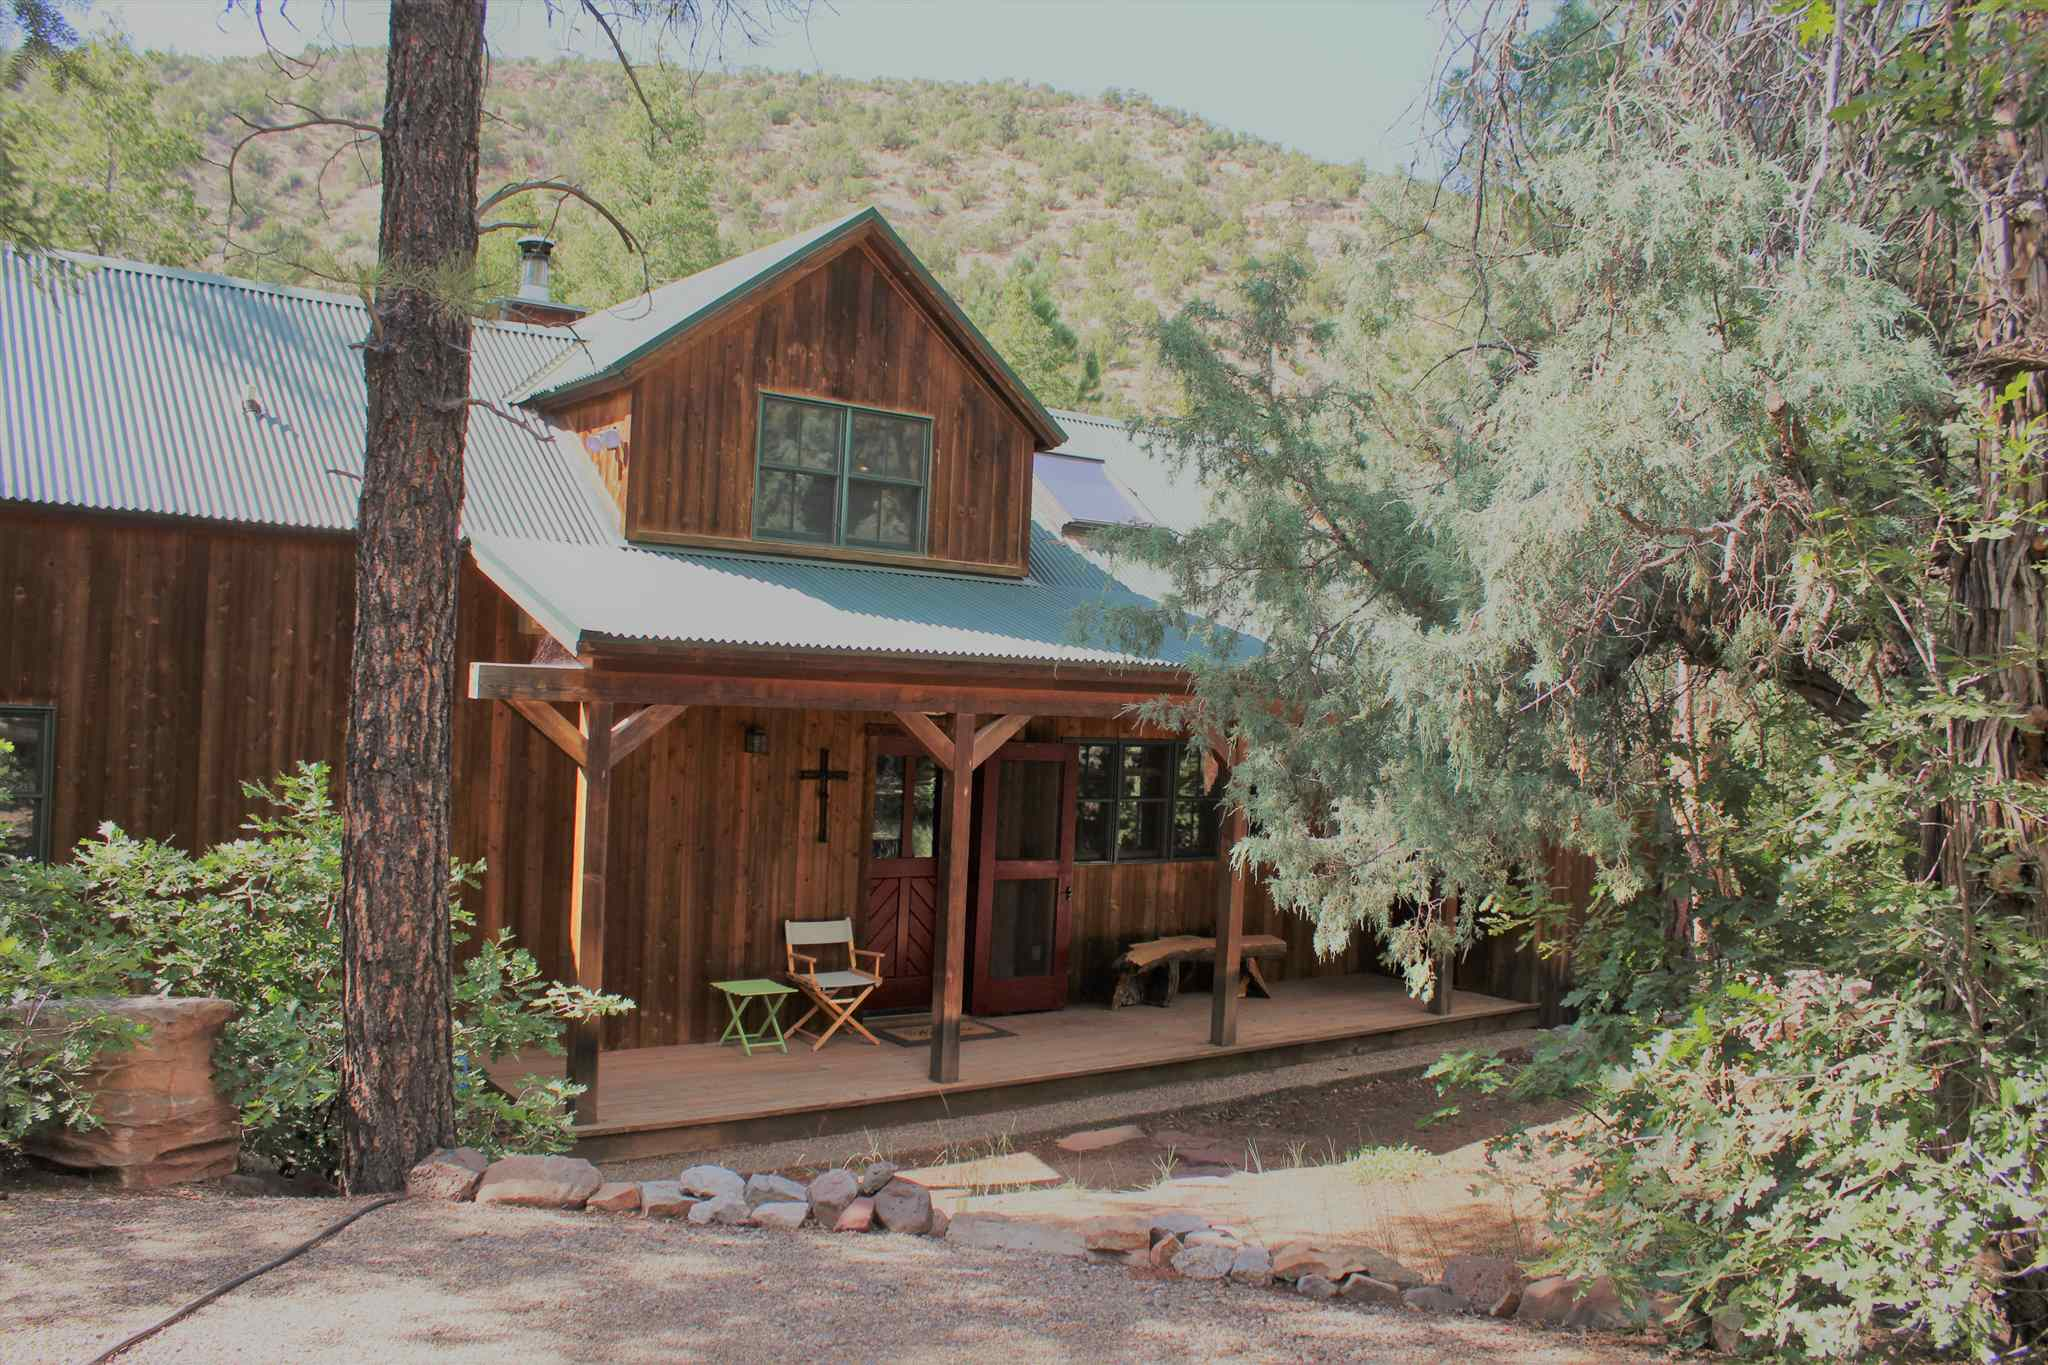 Unbelievable Riverfront GEM. Sit on the screened or open deck; your choice, but from either you will be soothed by the sound of the gurgling stream and the chirping birds. Lovely sitting area right beside the river for peaceful moments to reflect or a fishing excursion. Inside, nothing but gorgeous wood everywhere you look. Stunning solid wood floors made of Longleaf Heart Pine, floating subfloor with radiant heat providing 7 separate zones to heat only where necessary. Solid wood doors fabricated in Placitas, Interior walls and ceiling all 2'' gorgeous tongue and groove. Eagle wood windows and sliders. Top of the line sub-zero built in refrigerator, impressive Viking freestanding stove. ALL Unbelievably beautiful furnishings stay with home! Please watch VIRTUAL TOUR